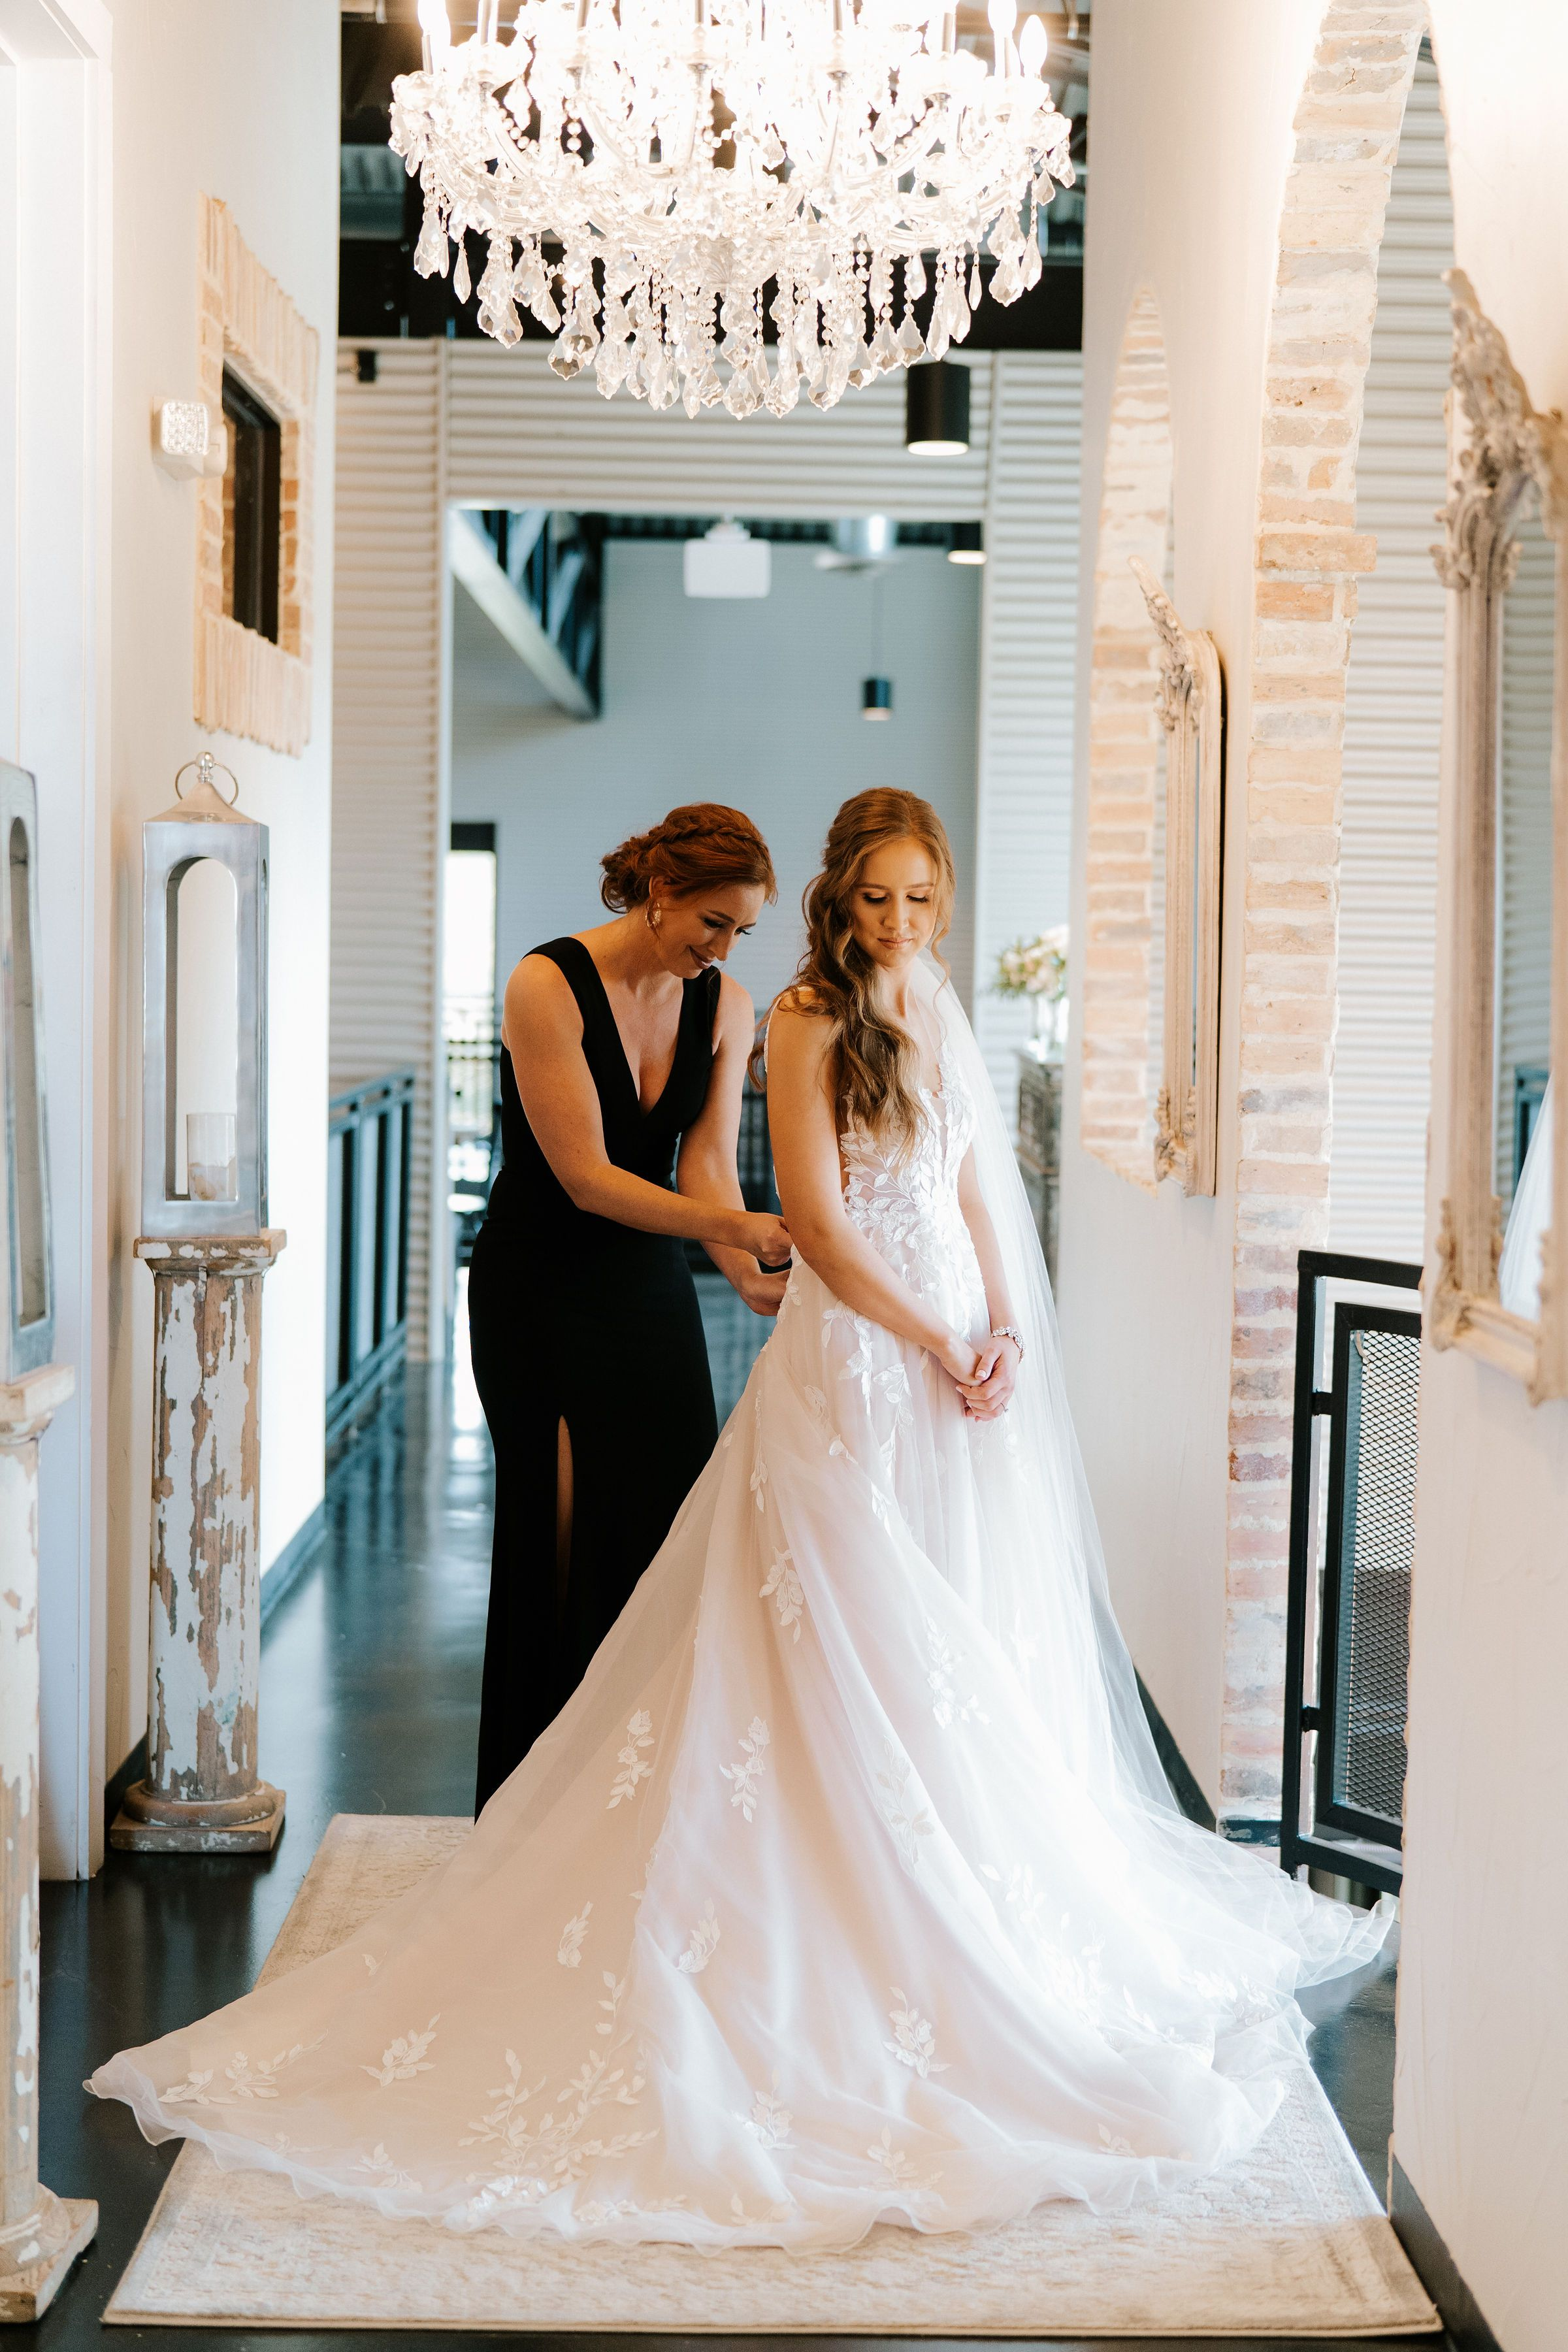 A bridesmaid finishes buttoning her friend's Essence of Australia wedding dress before her industrial chic wedding.